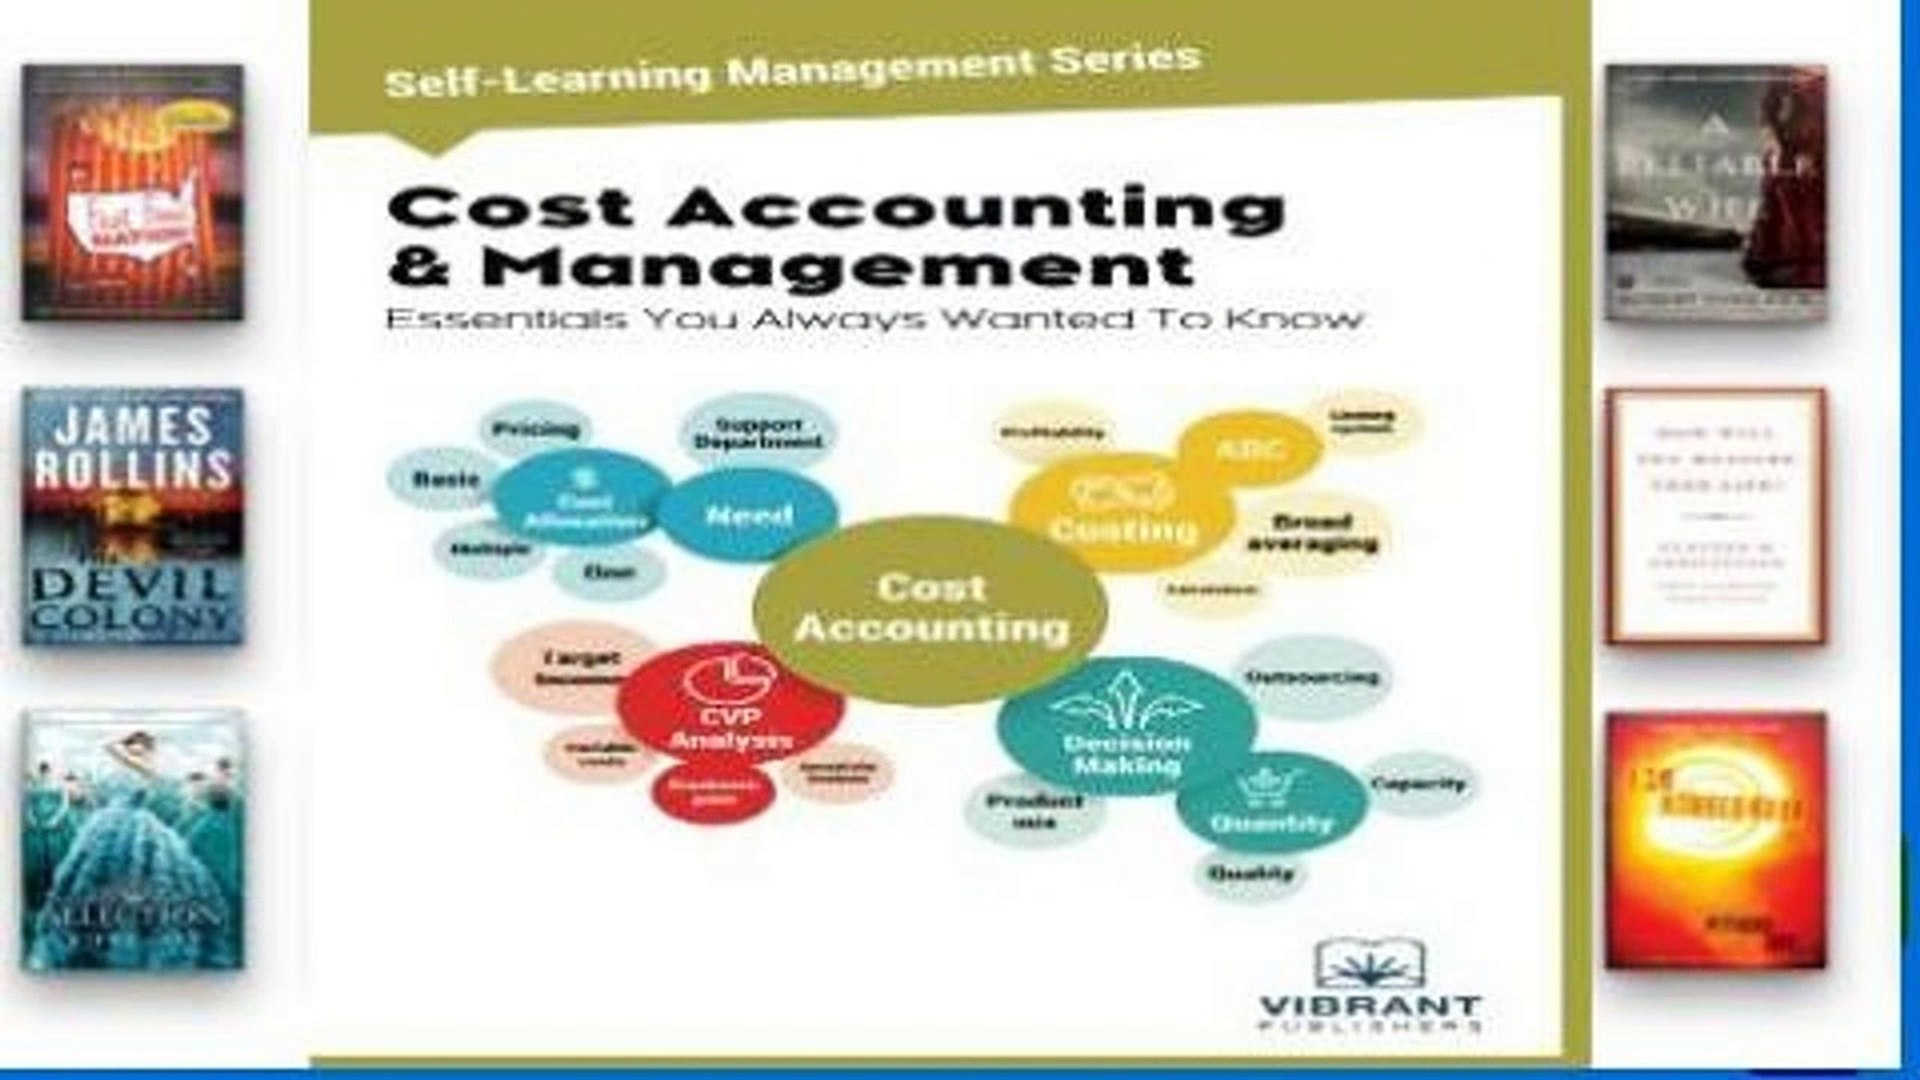 Cost Accounting /& Management Essentials You Always Wanted To Know